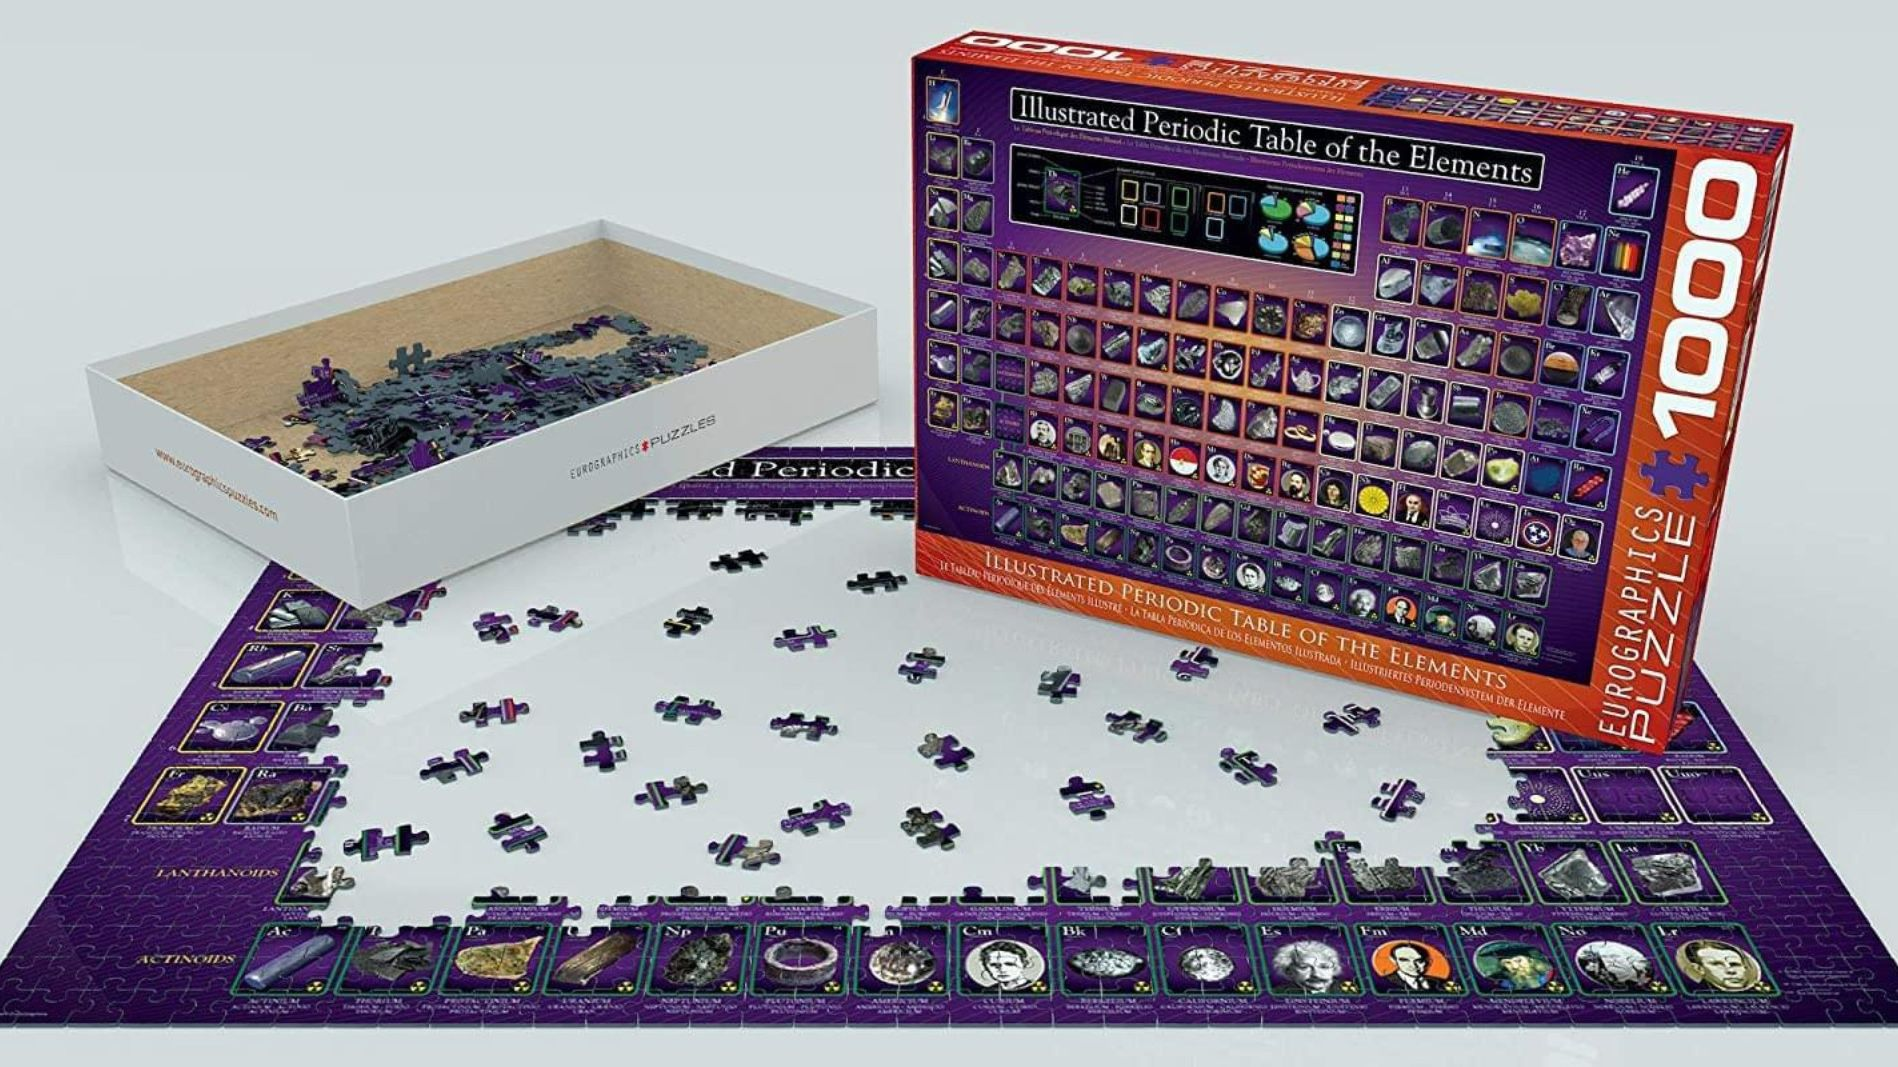 Piece Together Some Science With This Periodic Table Jigsaw Puzzle